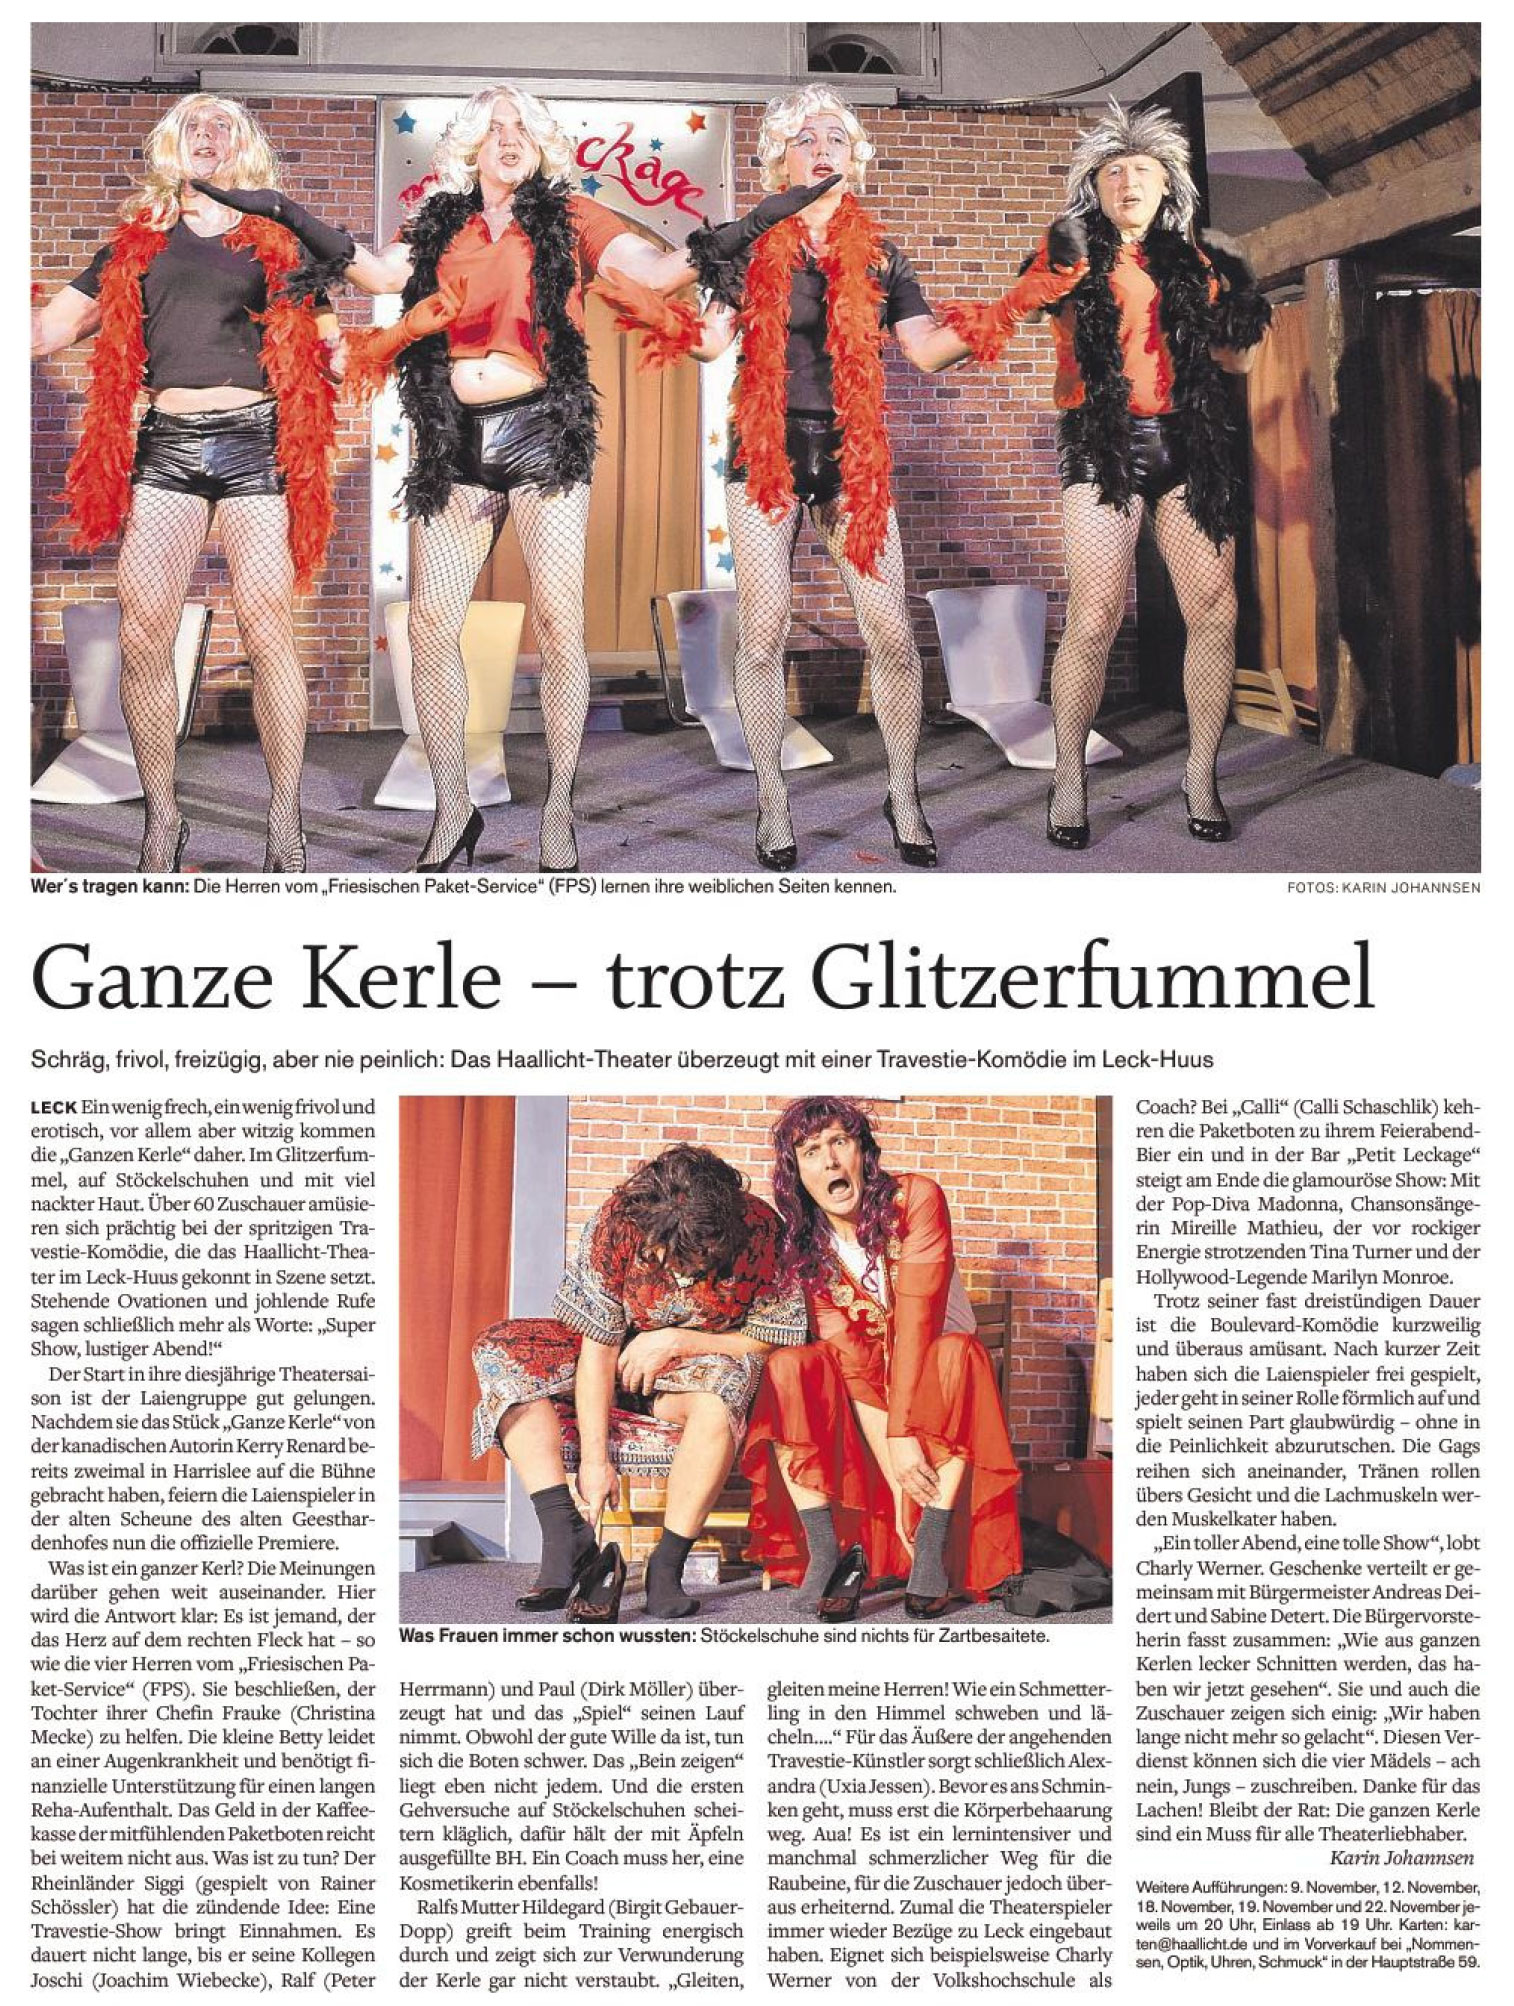 """Ganze Kerle"" (November 2016)"